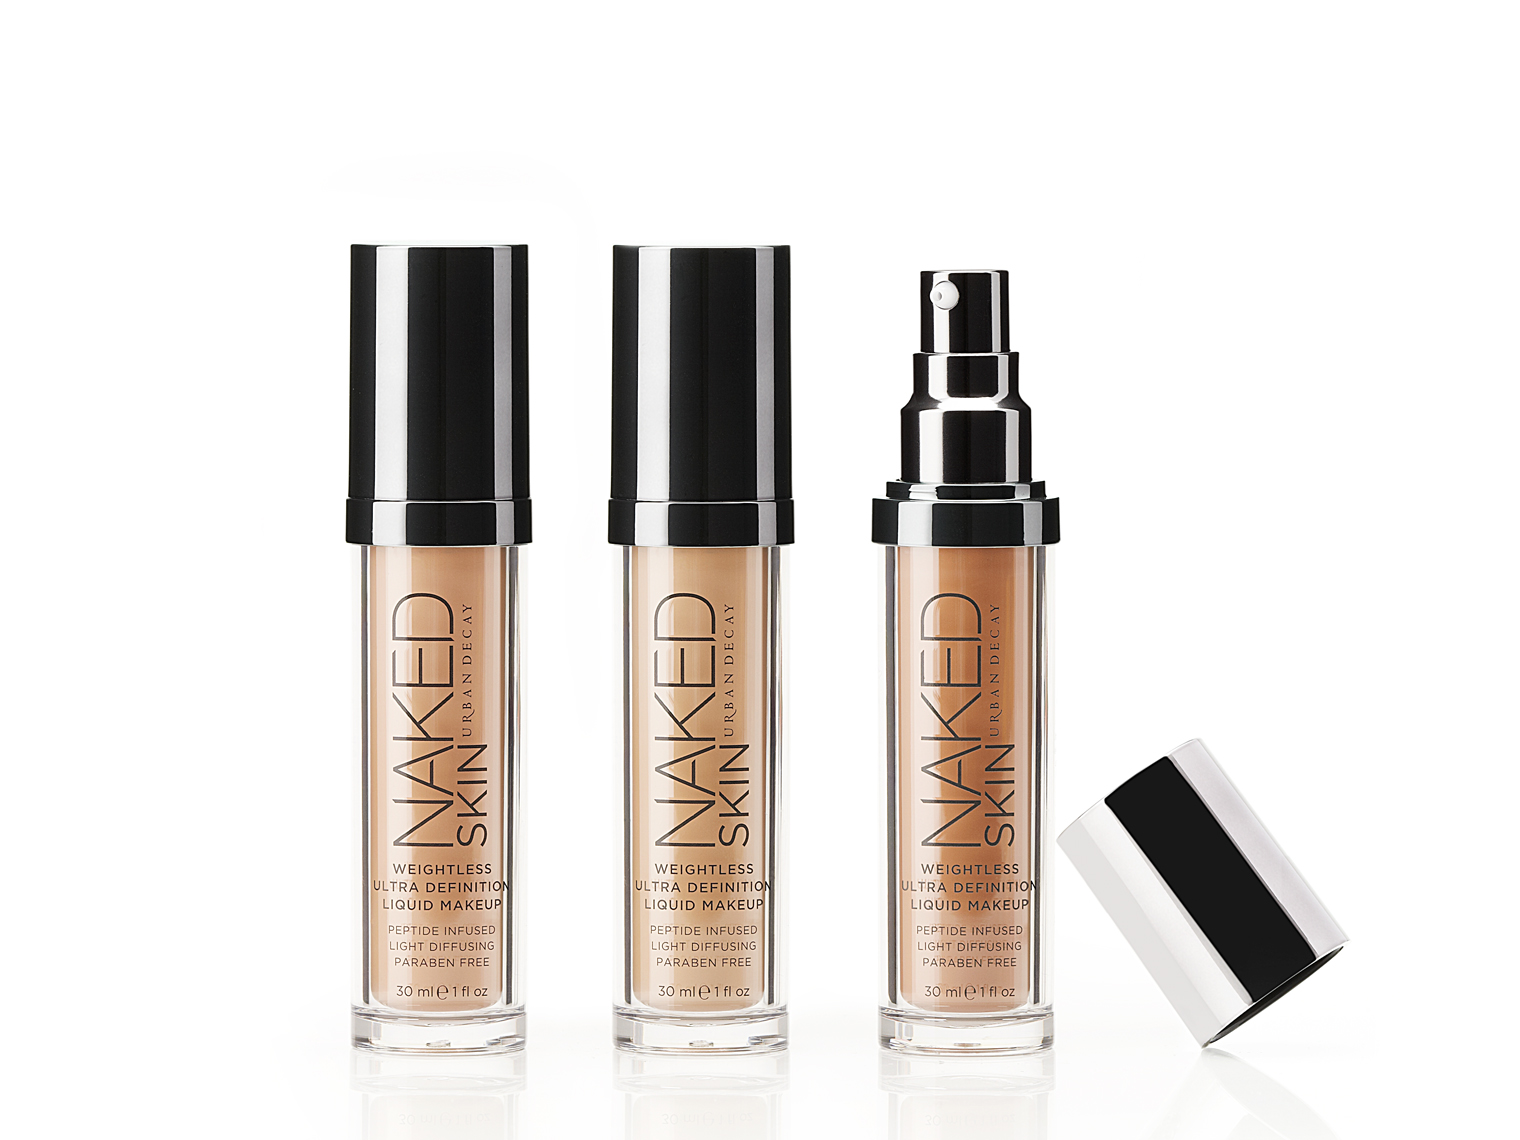 naked_skin urban decay - San Francisco product photographer